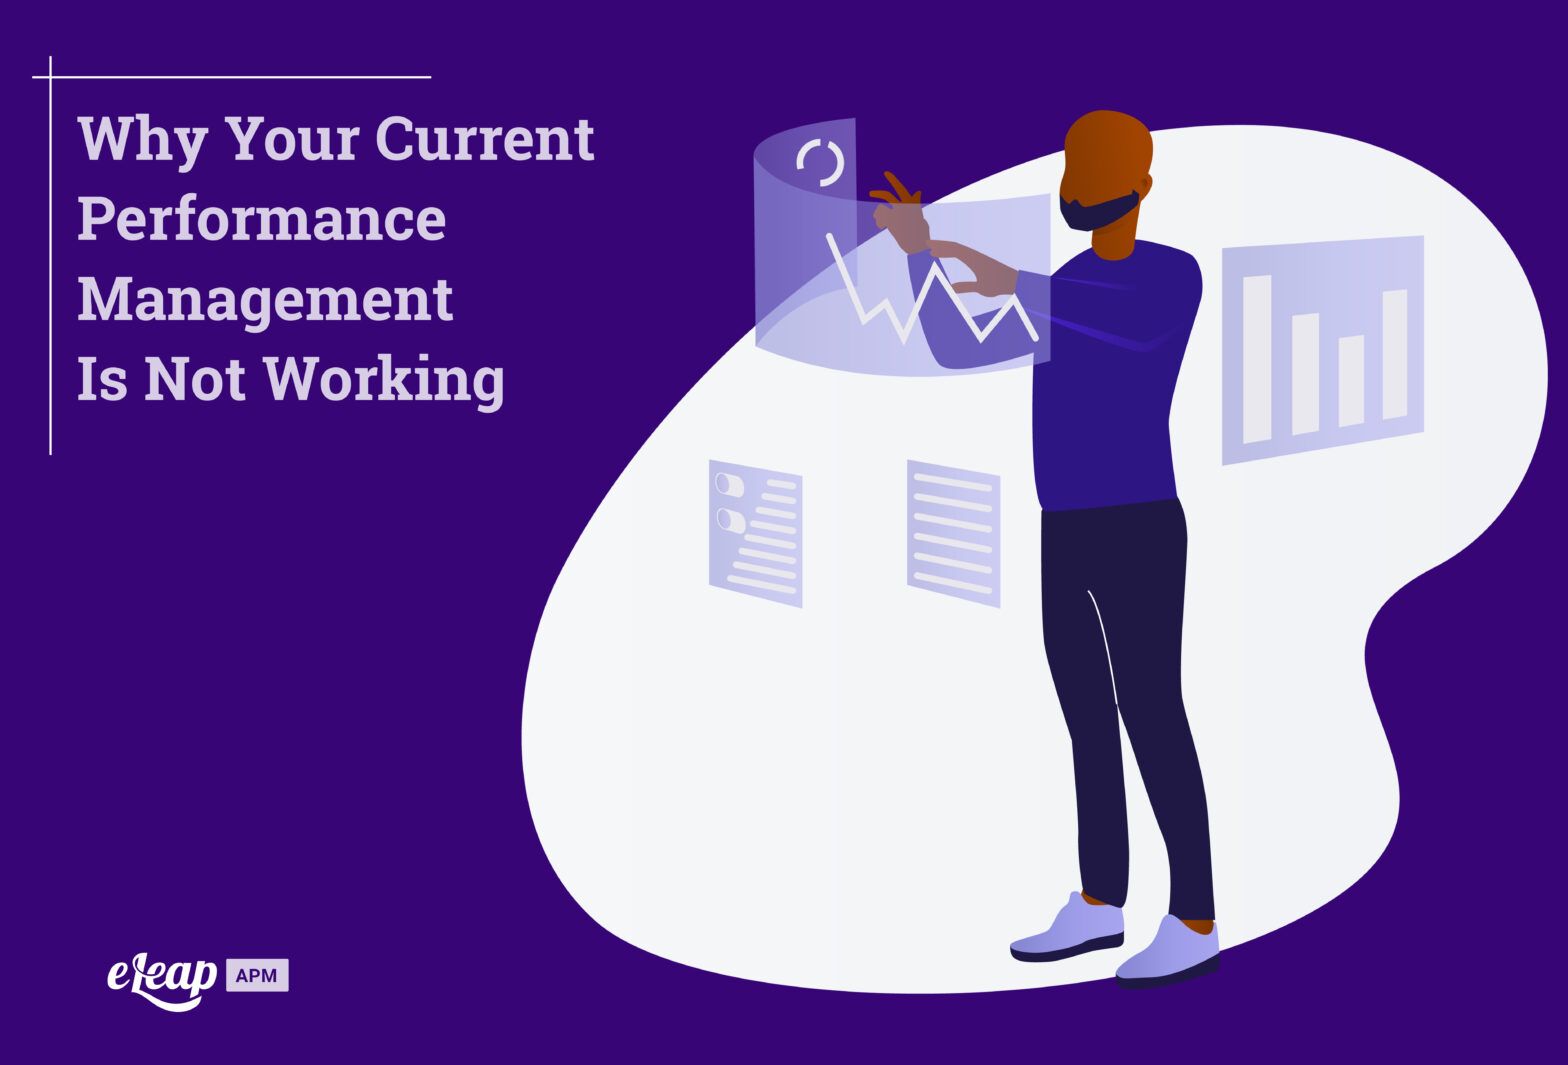 Why Your Current Performance Management Is Not Working